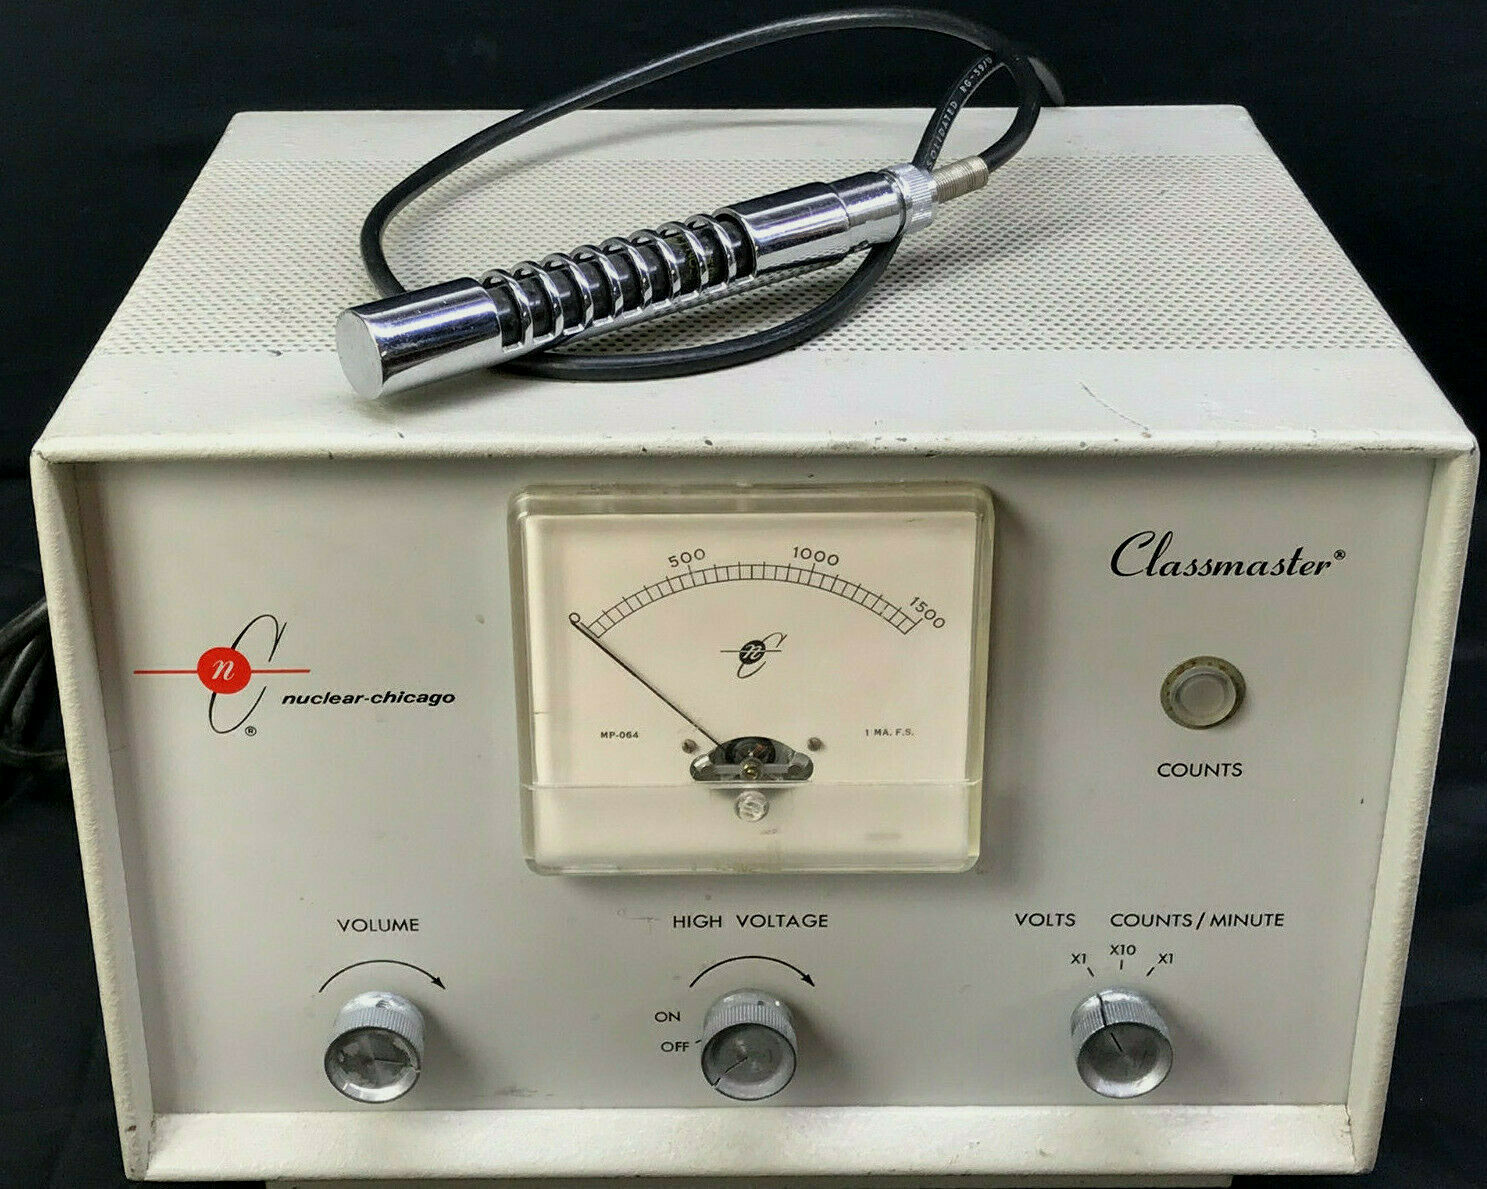 s l1600 - VTG Cold War-Era Tube-Type Geiger Counter Radiation Detector - CLASSMASTER 6320